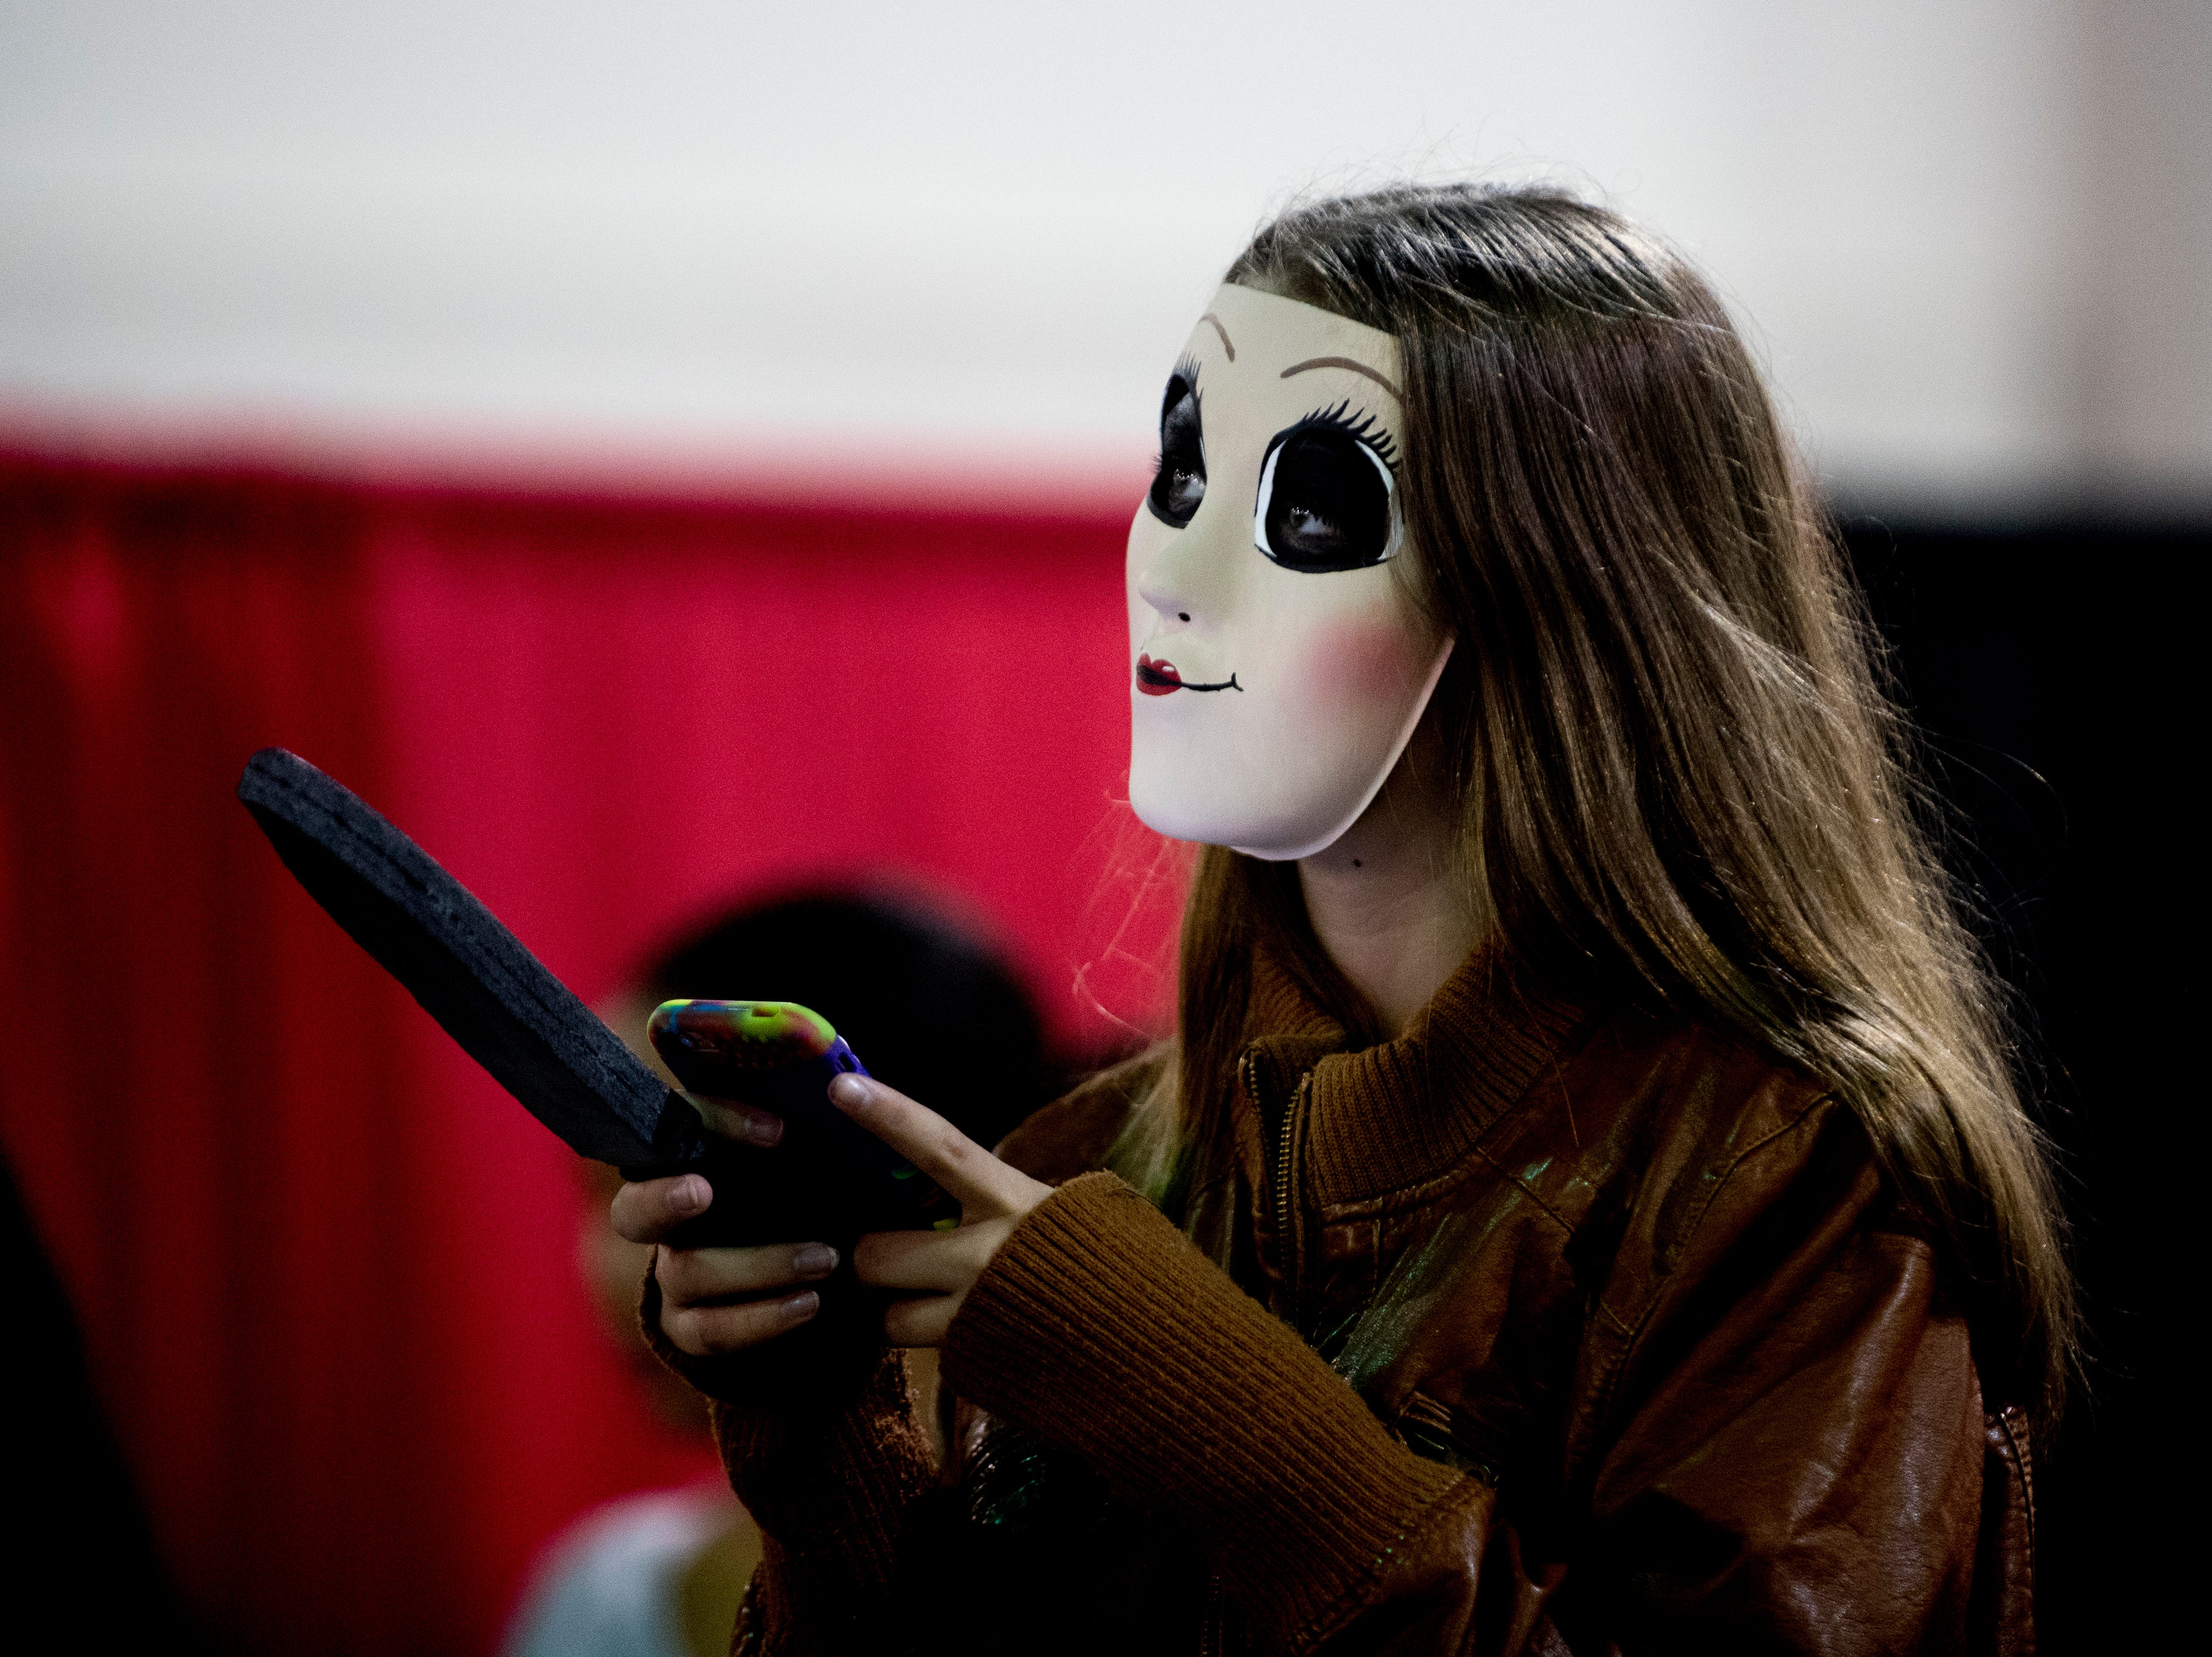 An attendee looks up from their phone during the annual Knoxville CreepyCon at the World's Fair Exhibition Hall in Knoxville, Tennessee on Saturday, August 25, 2018. The event featured performers, a zombie beauty contest, workshops and a wide selection of vendors.